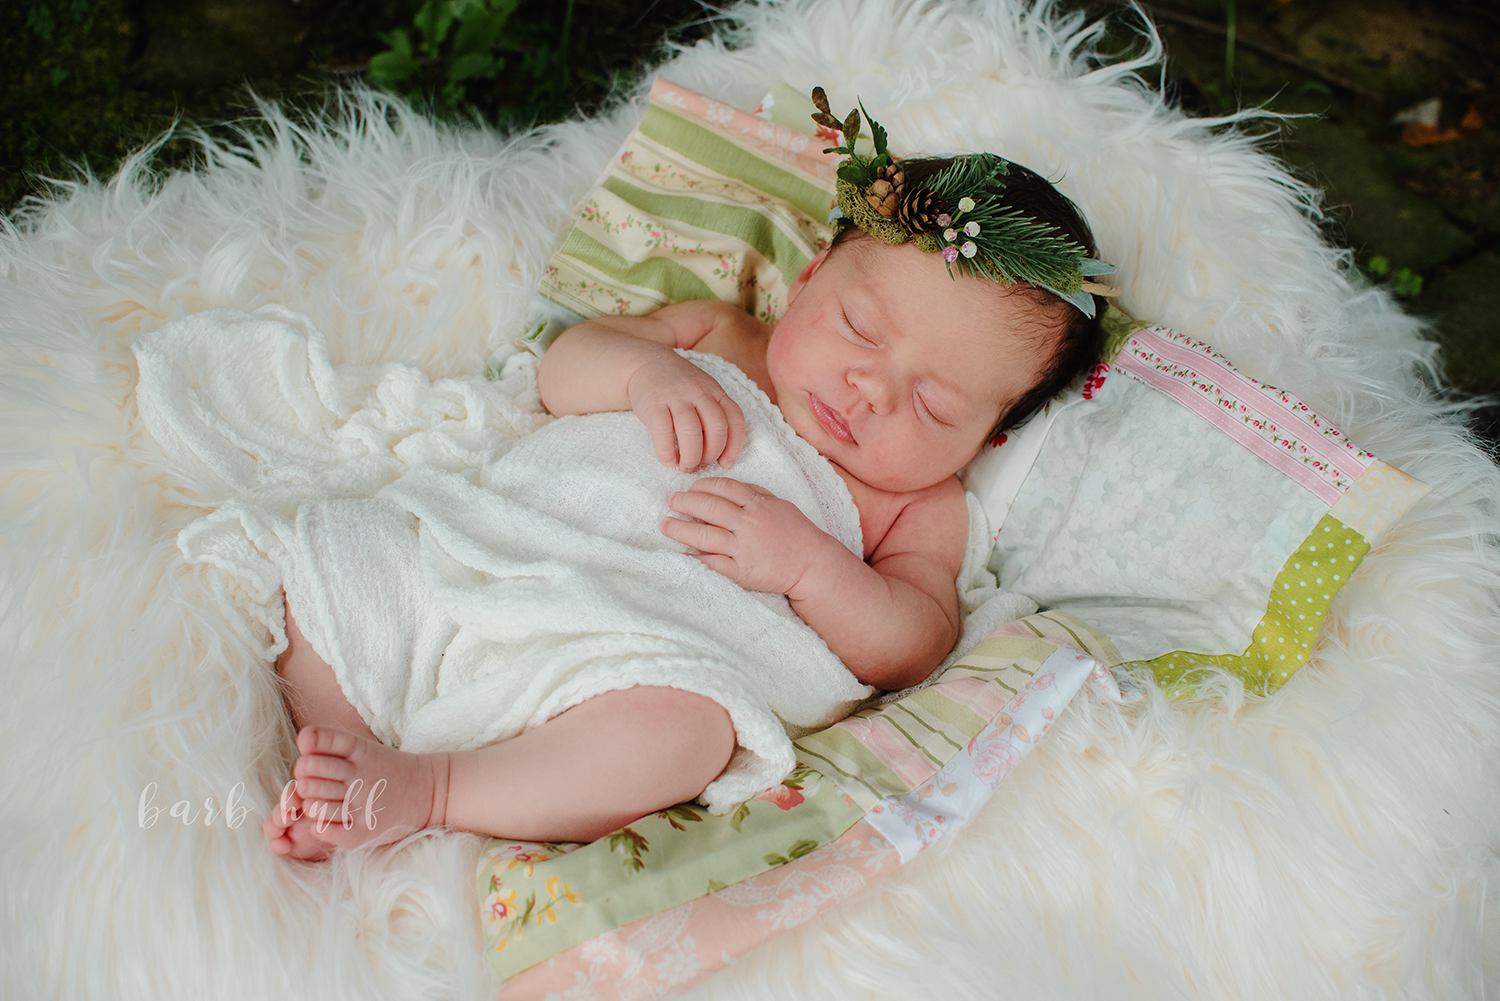 bjp-baby-newborn-family-lifestyle-outdoors-on-location-photographer-dover-ohio-new-philadelphia-tasha13.png